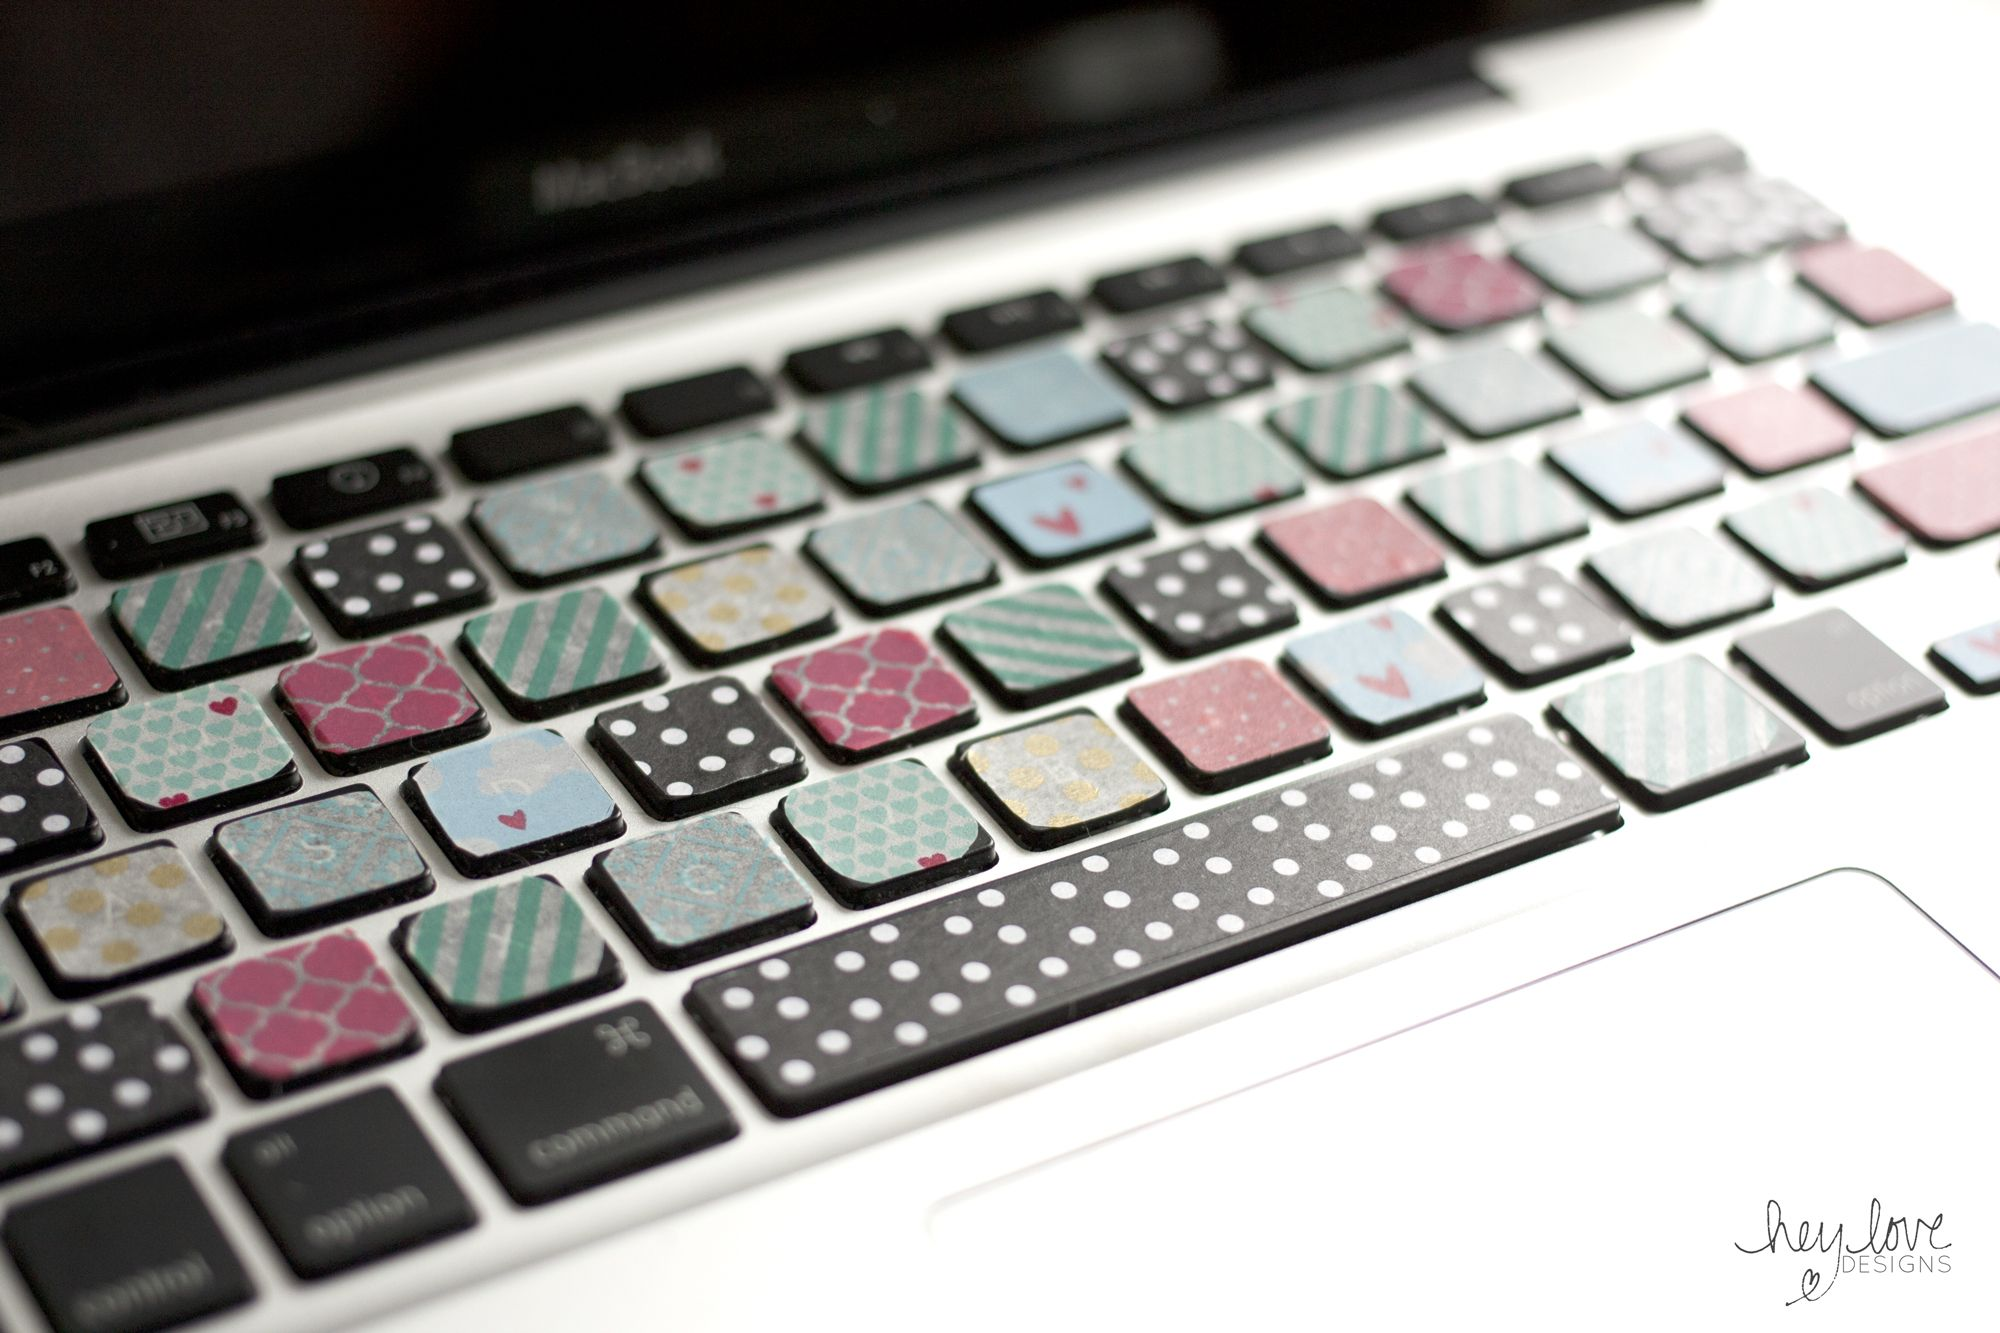 Get Crafty Diy Washi Tape Keyboard Washi Tape Keyboard Washi